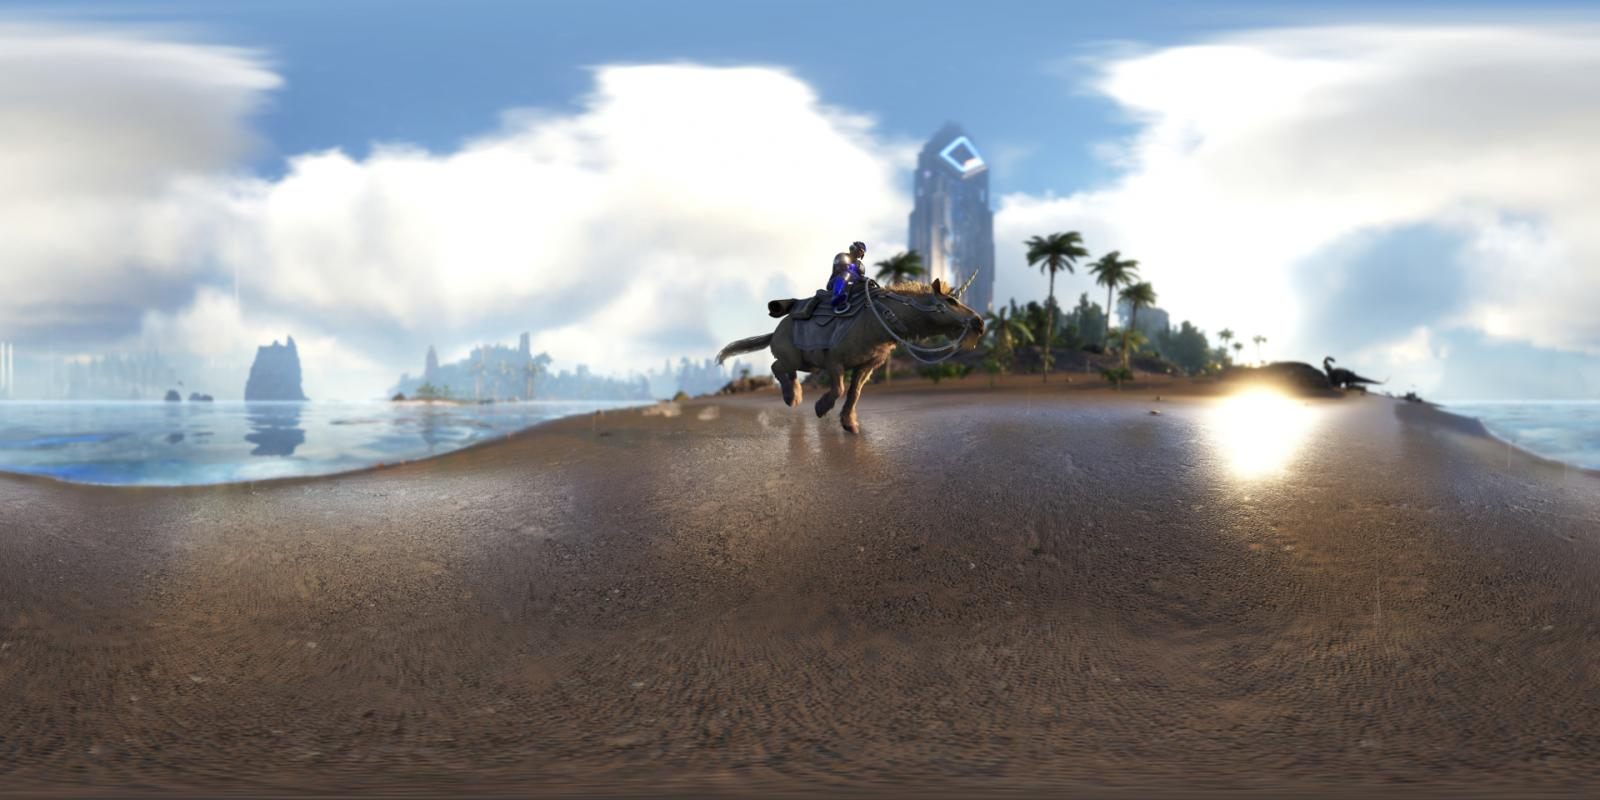 large.5a220998d2e22_Vakarian-UnicornRideonthebeach-Panoramic360Steroscopic3D.jpg